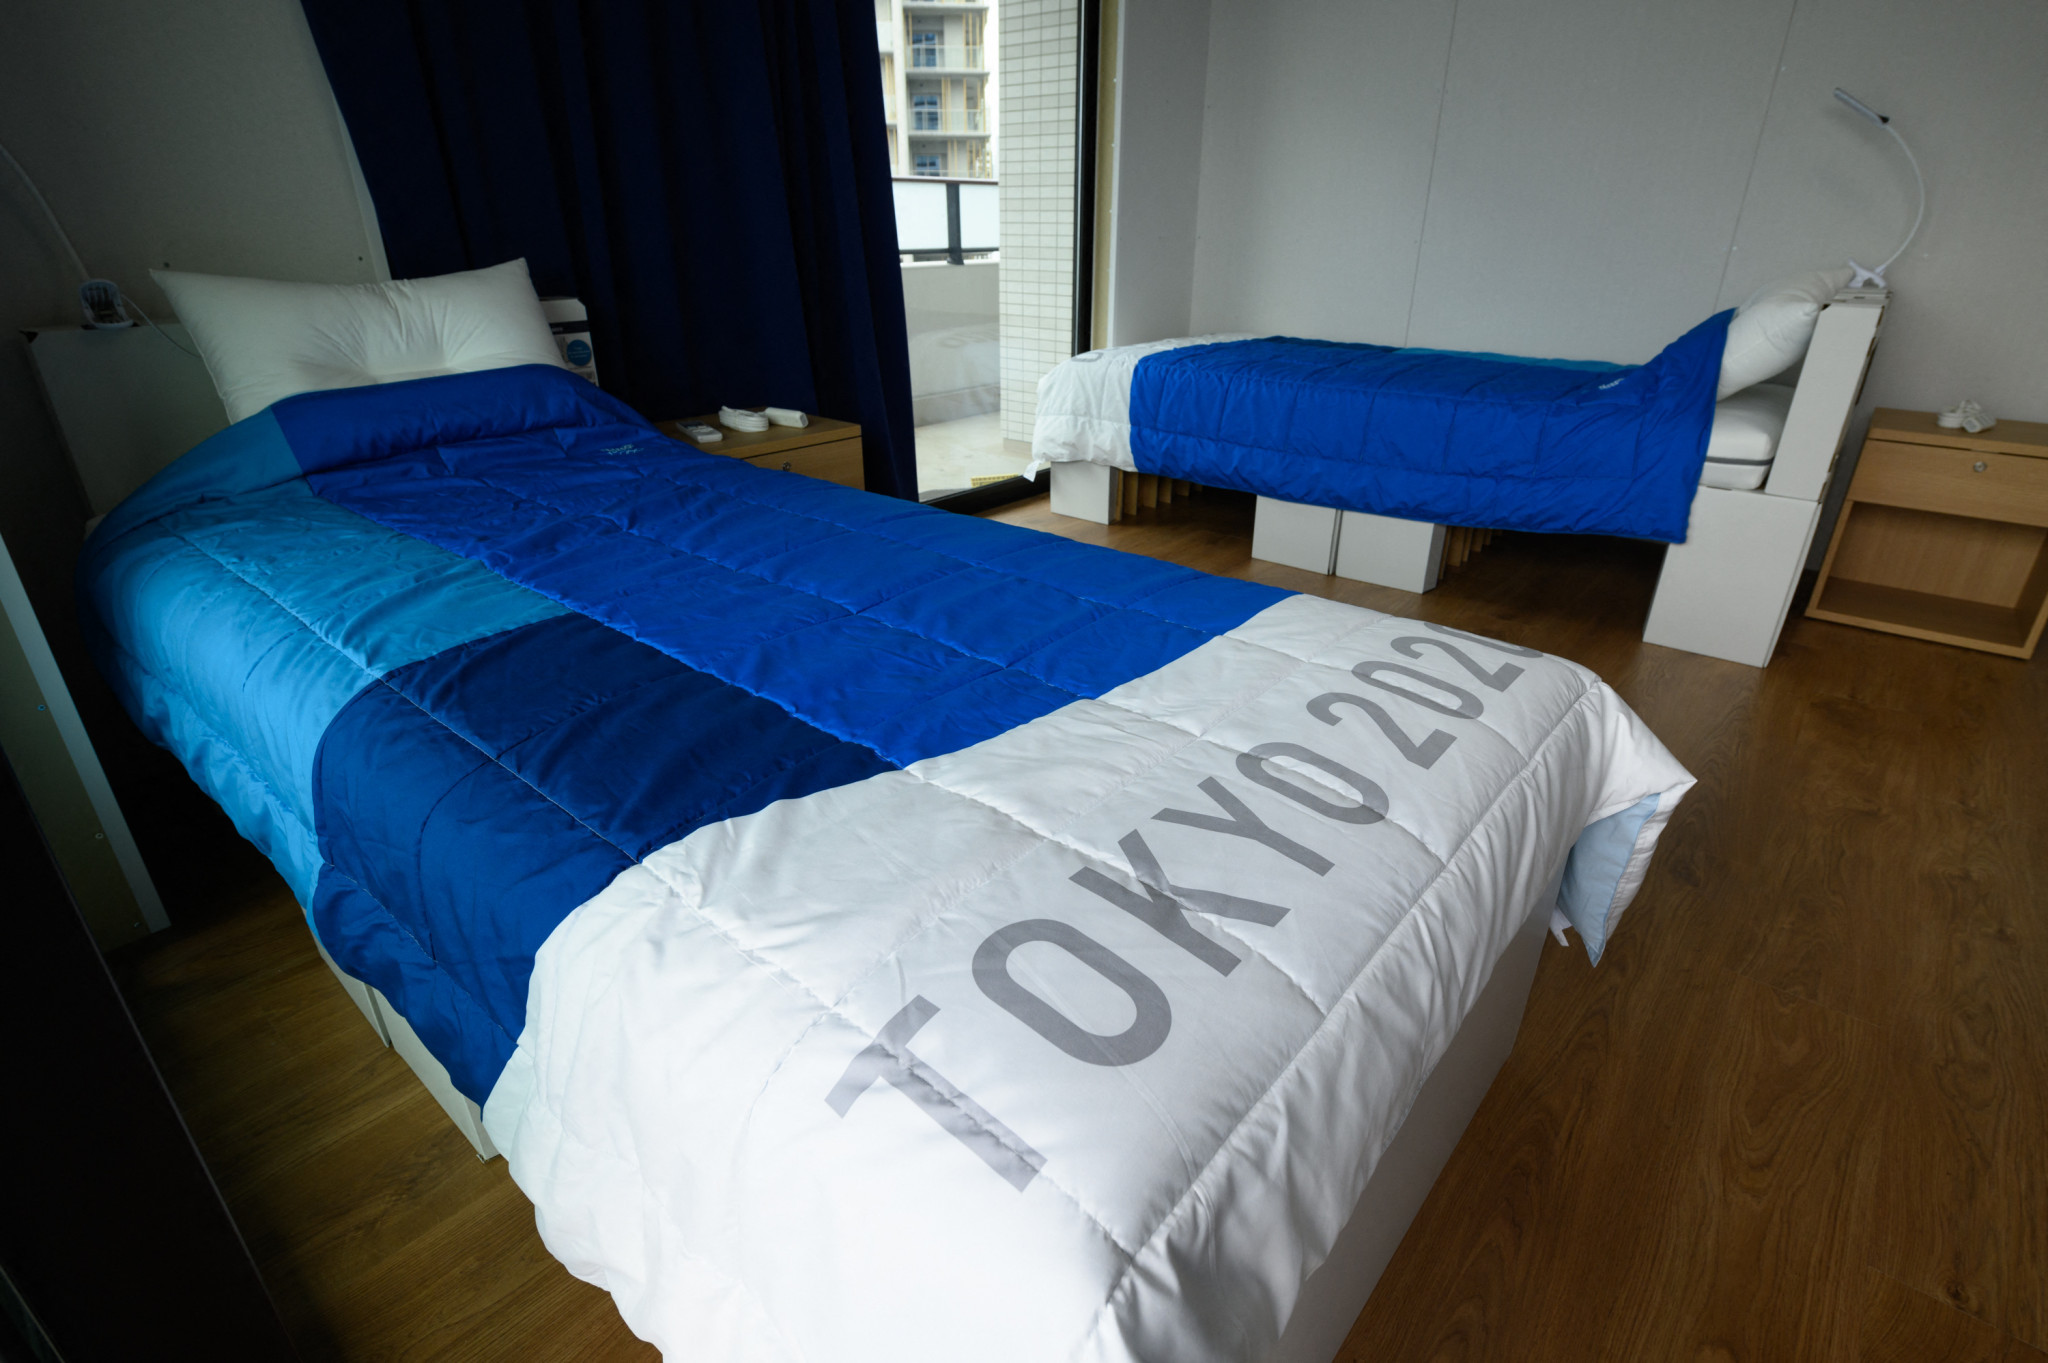 Tokyo 2020 cardboard beds to be made available for COVID-19 patients in Osaka